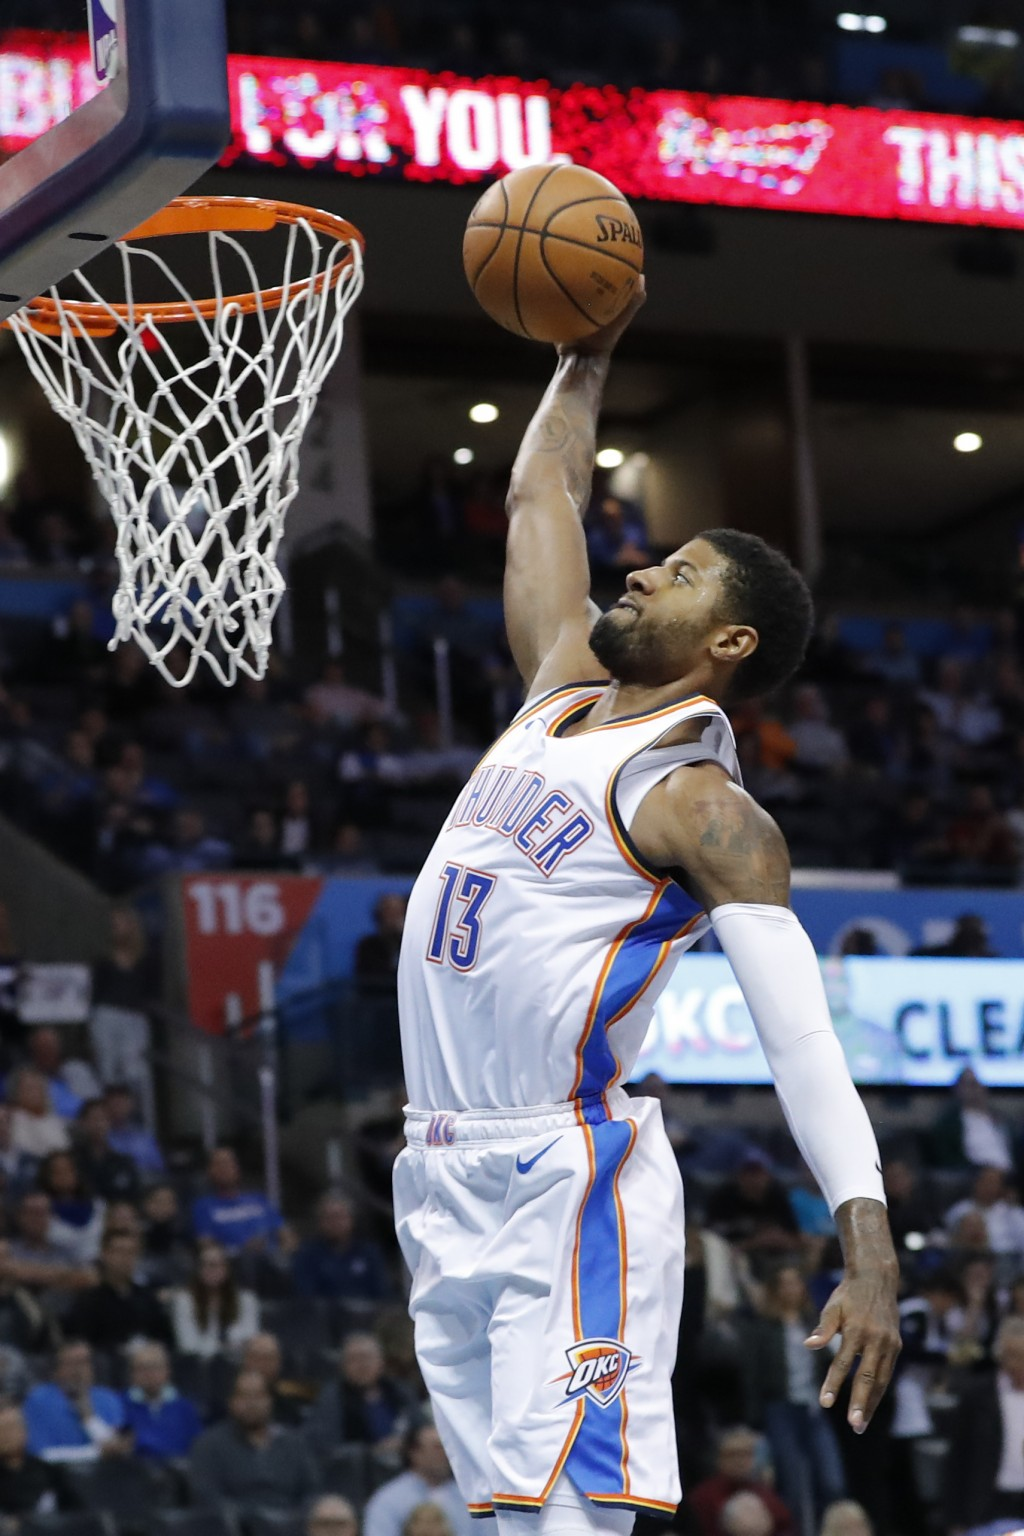 Oklahoma City Thunder forward Paul George dunks against the Cleveland Cavaliers during the second half of an NBA basketball game in Oklahoma City, Wed...